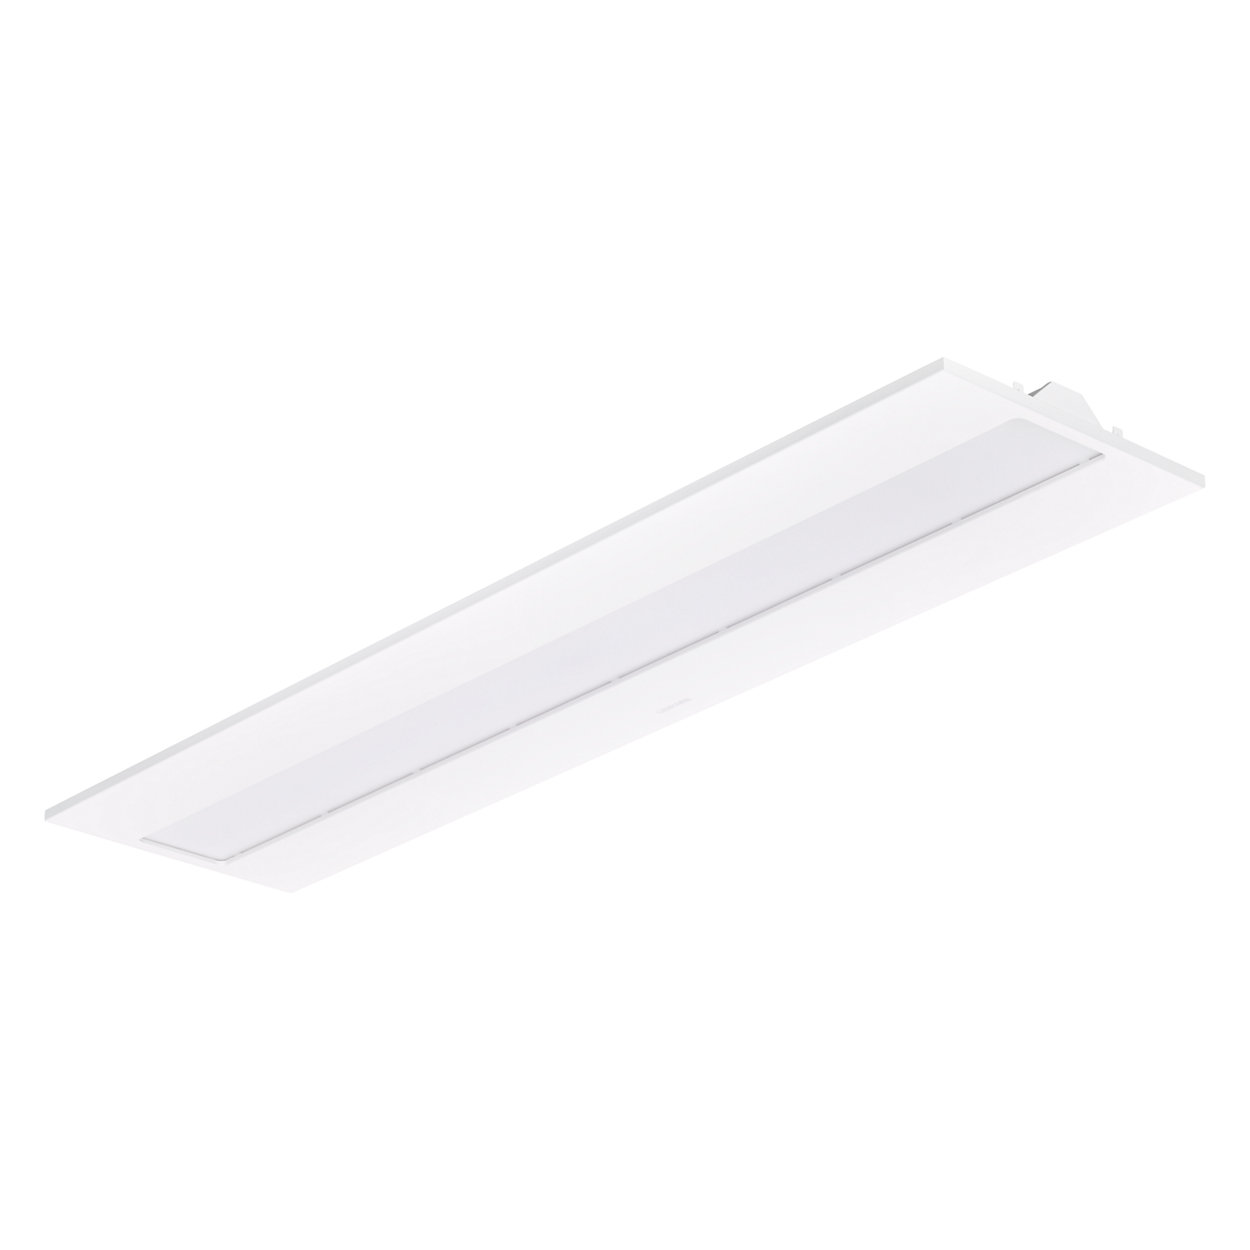 Ledinaire Recessed – Simply great LED